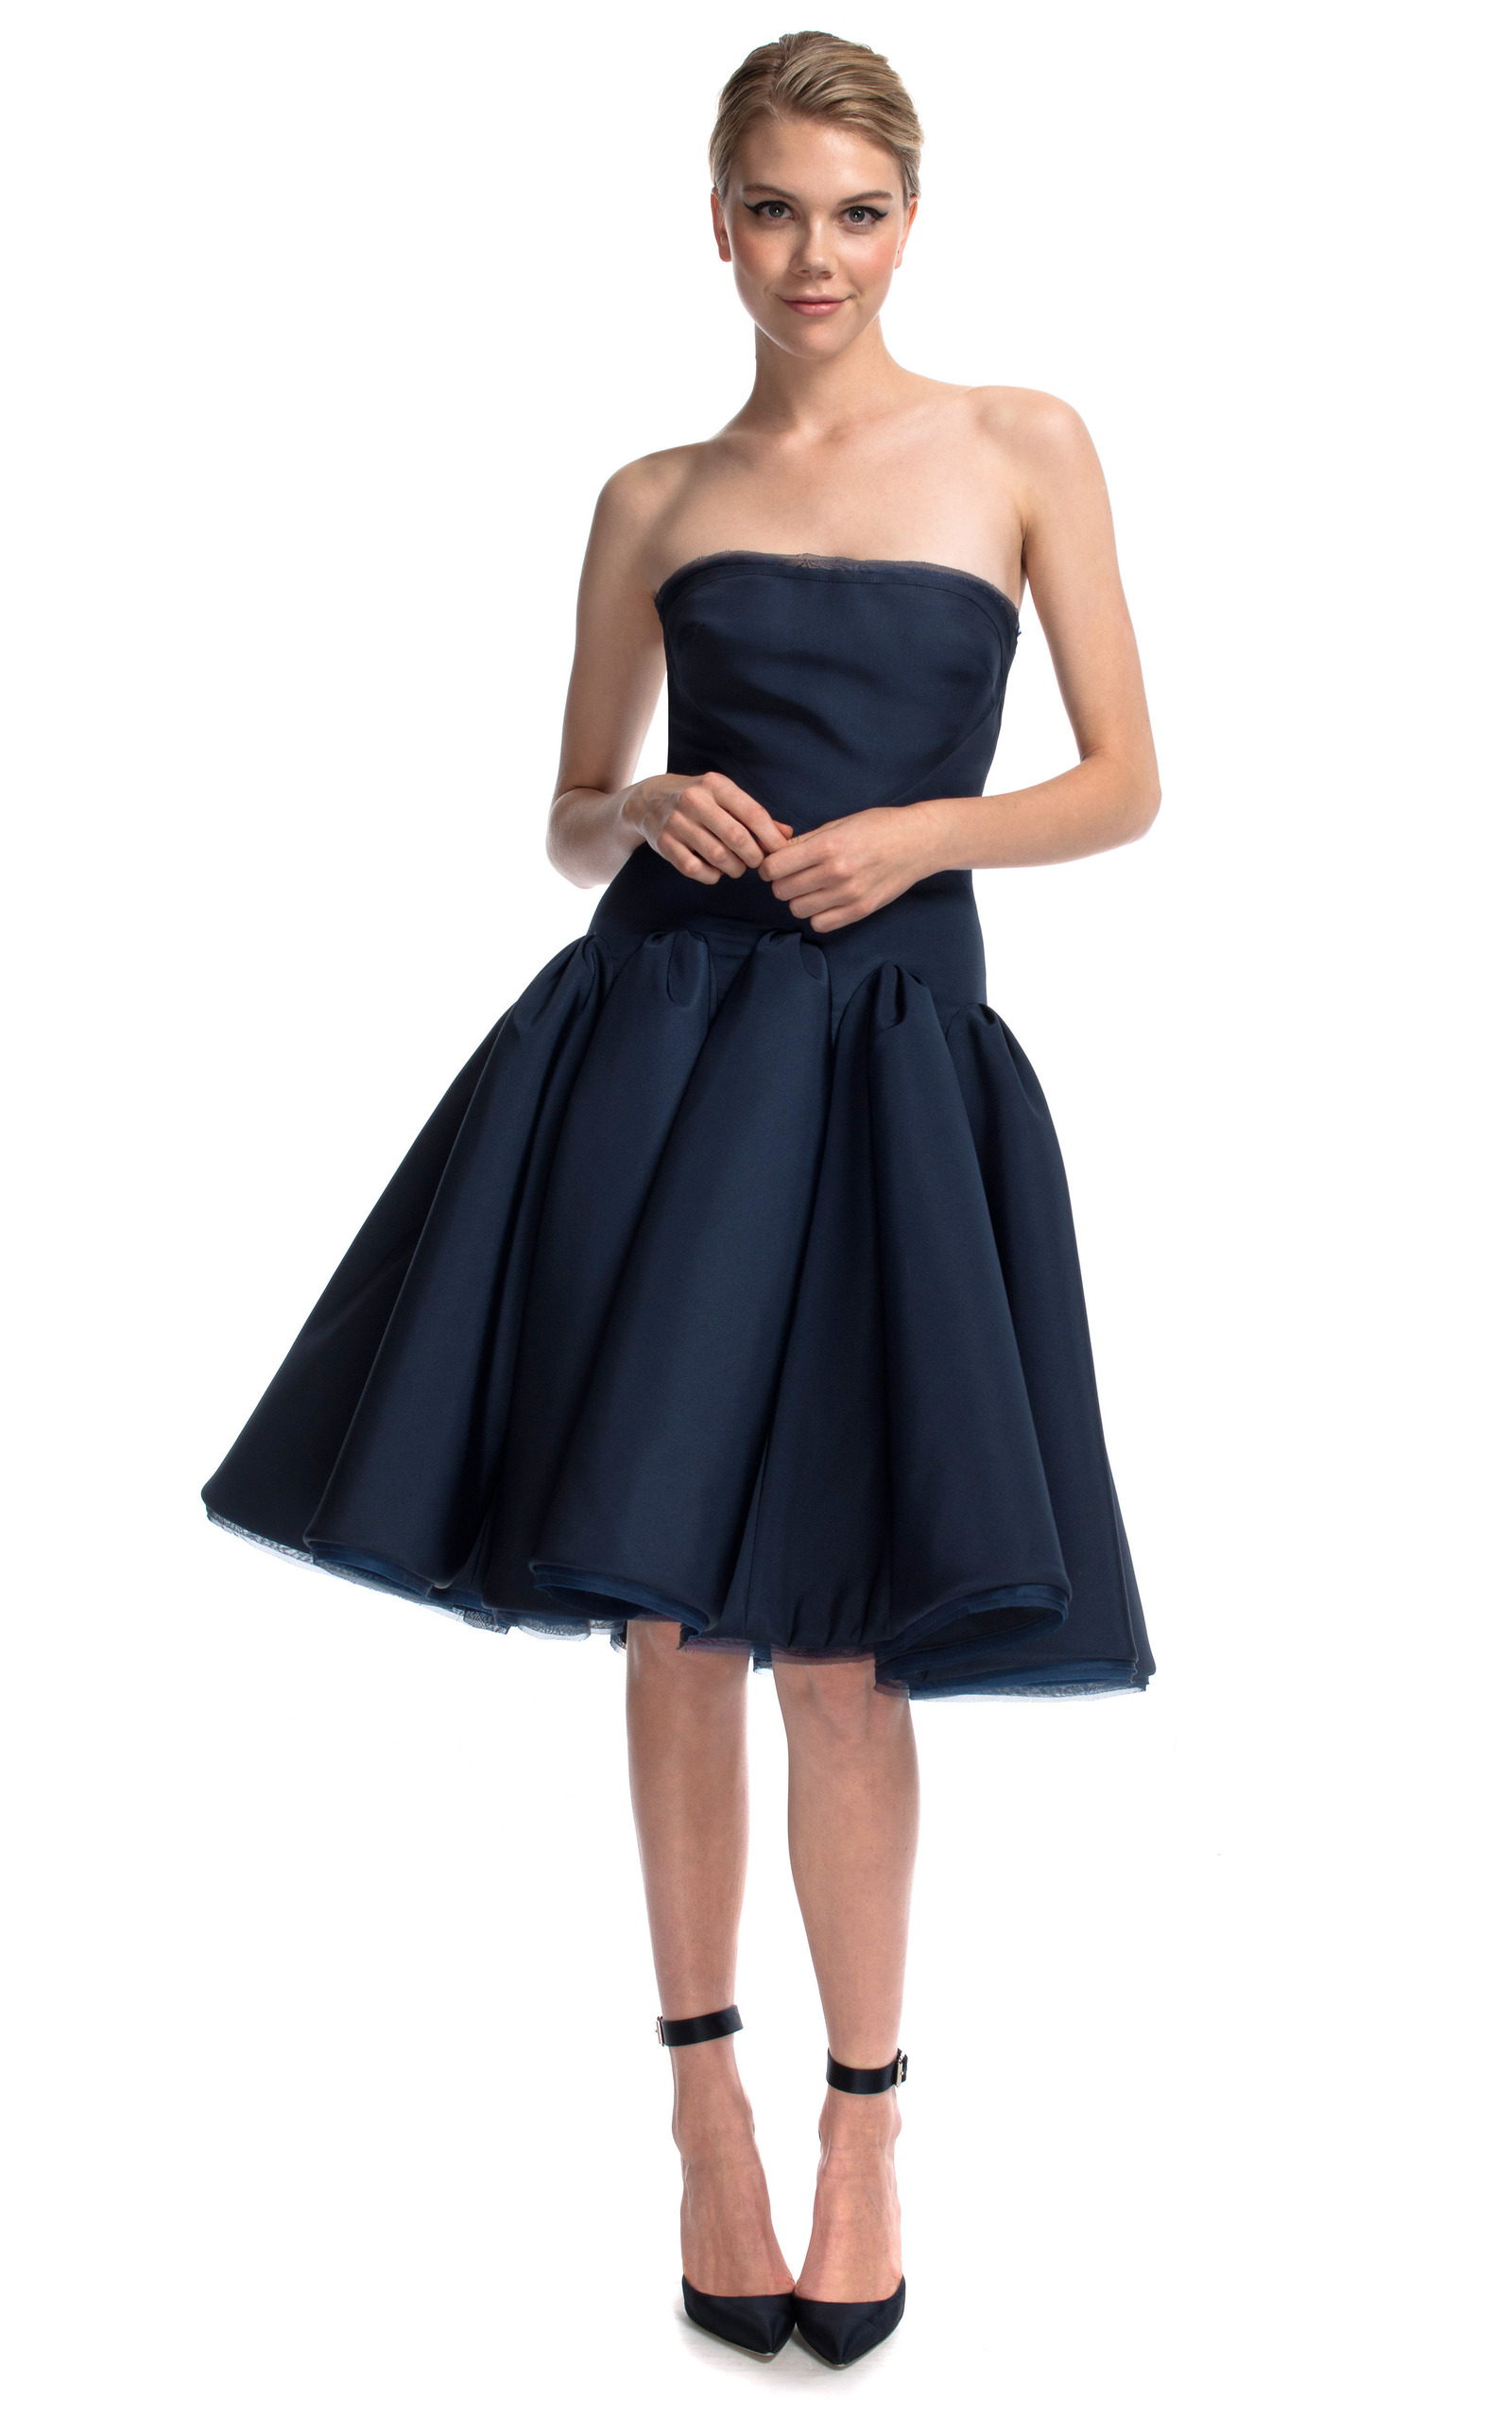 Zac Posen Dresses in Navy